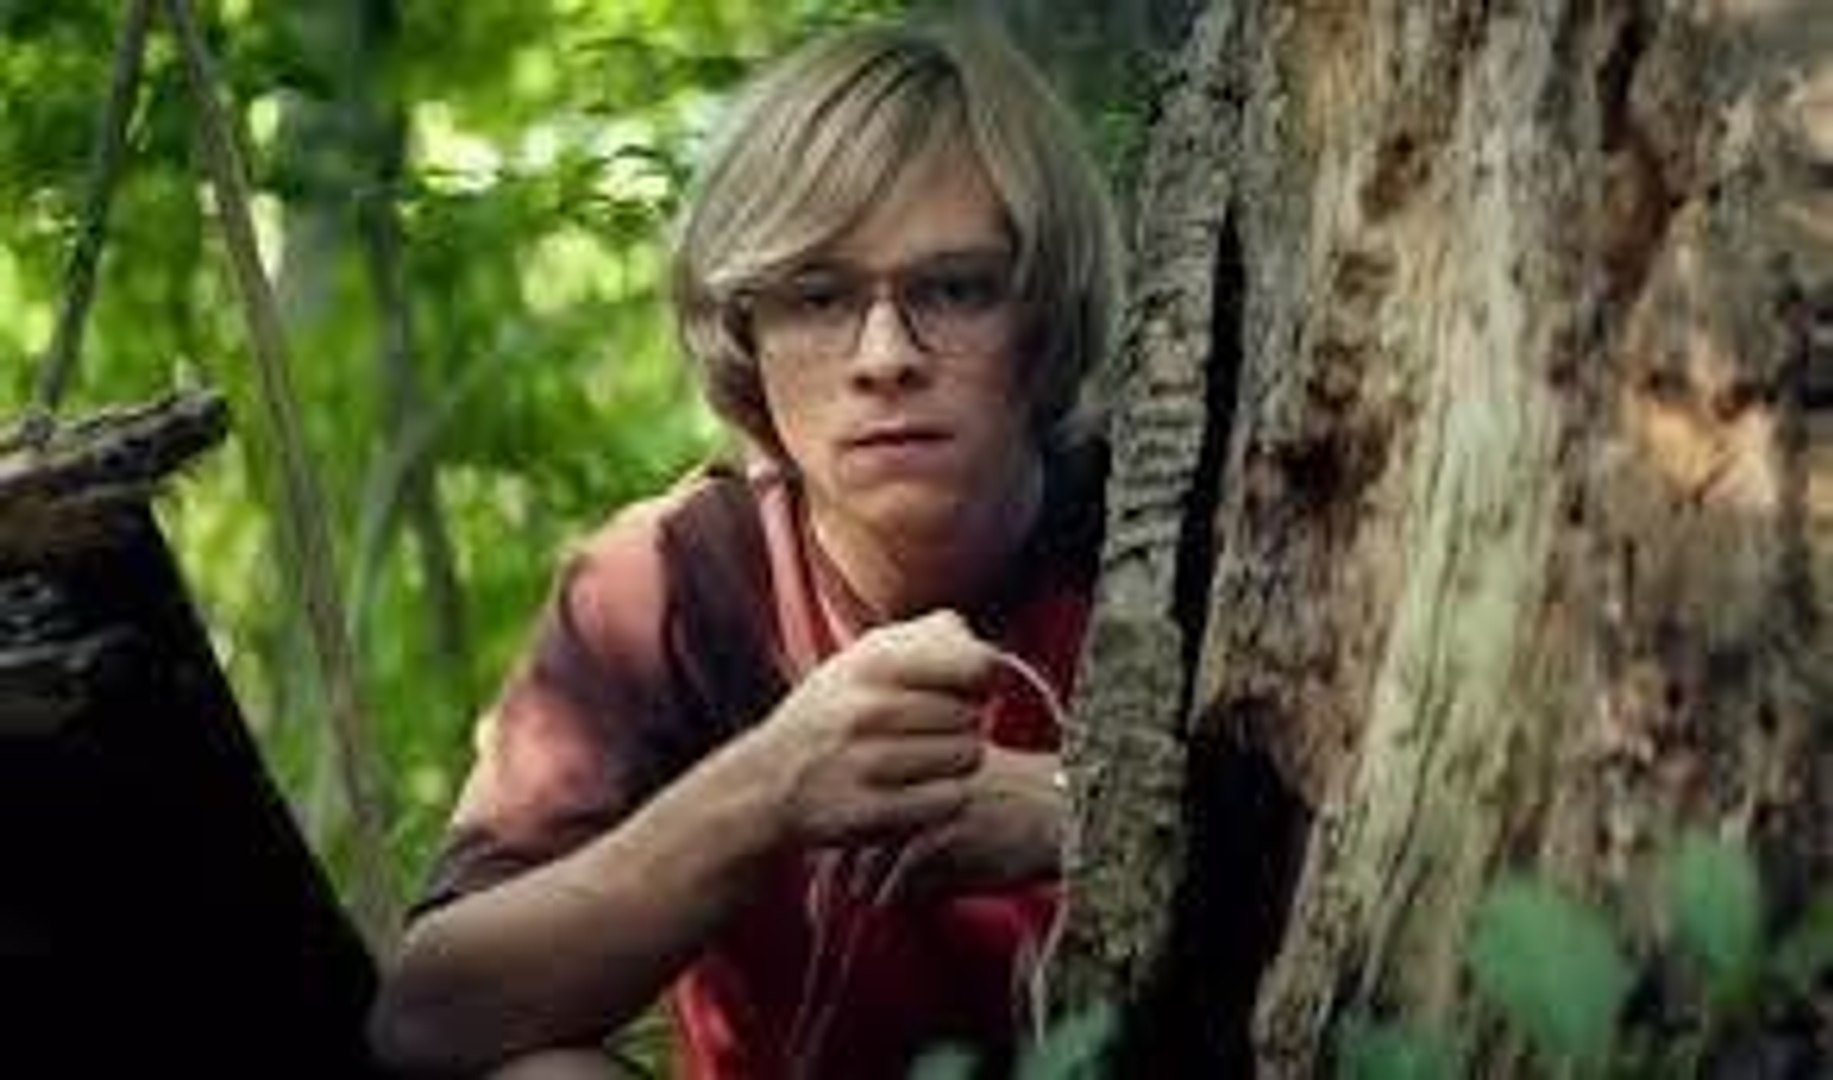 my friend dahmer download mp4